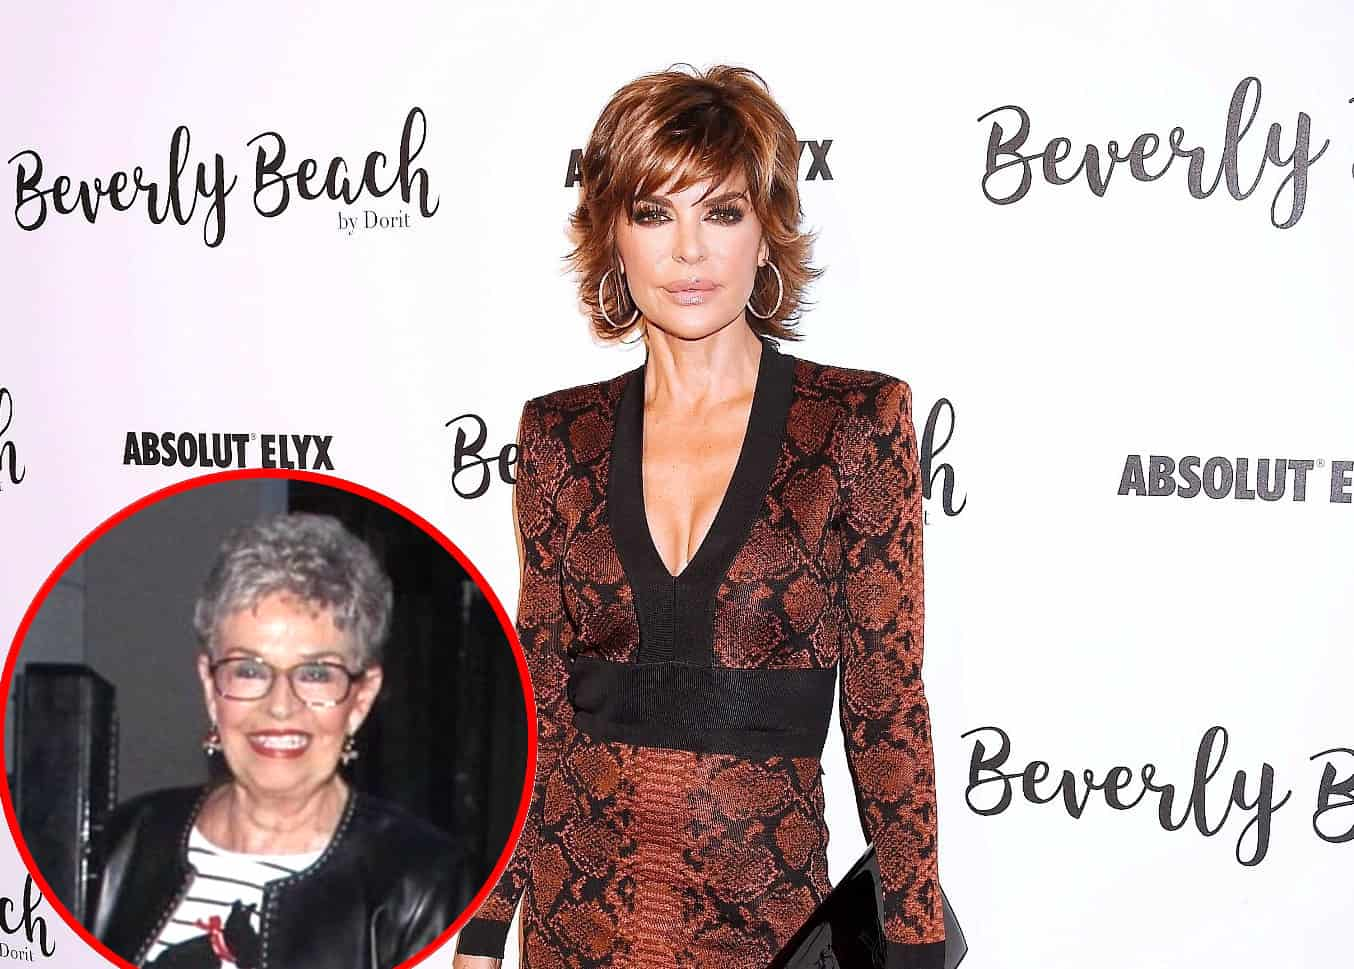 Lisa Rinna Reveals She Hasn't Seen Mother Lois in a Year Due to Pandemic, Posts Sweet Video Tribute as RHOBH Copes With Production Halt